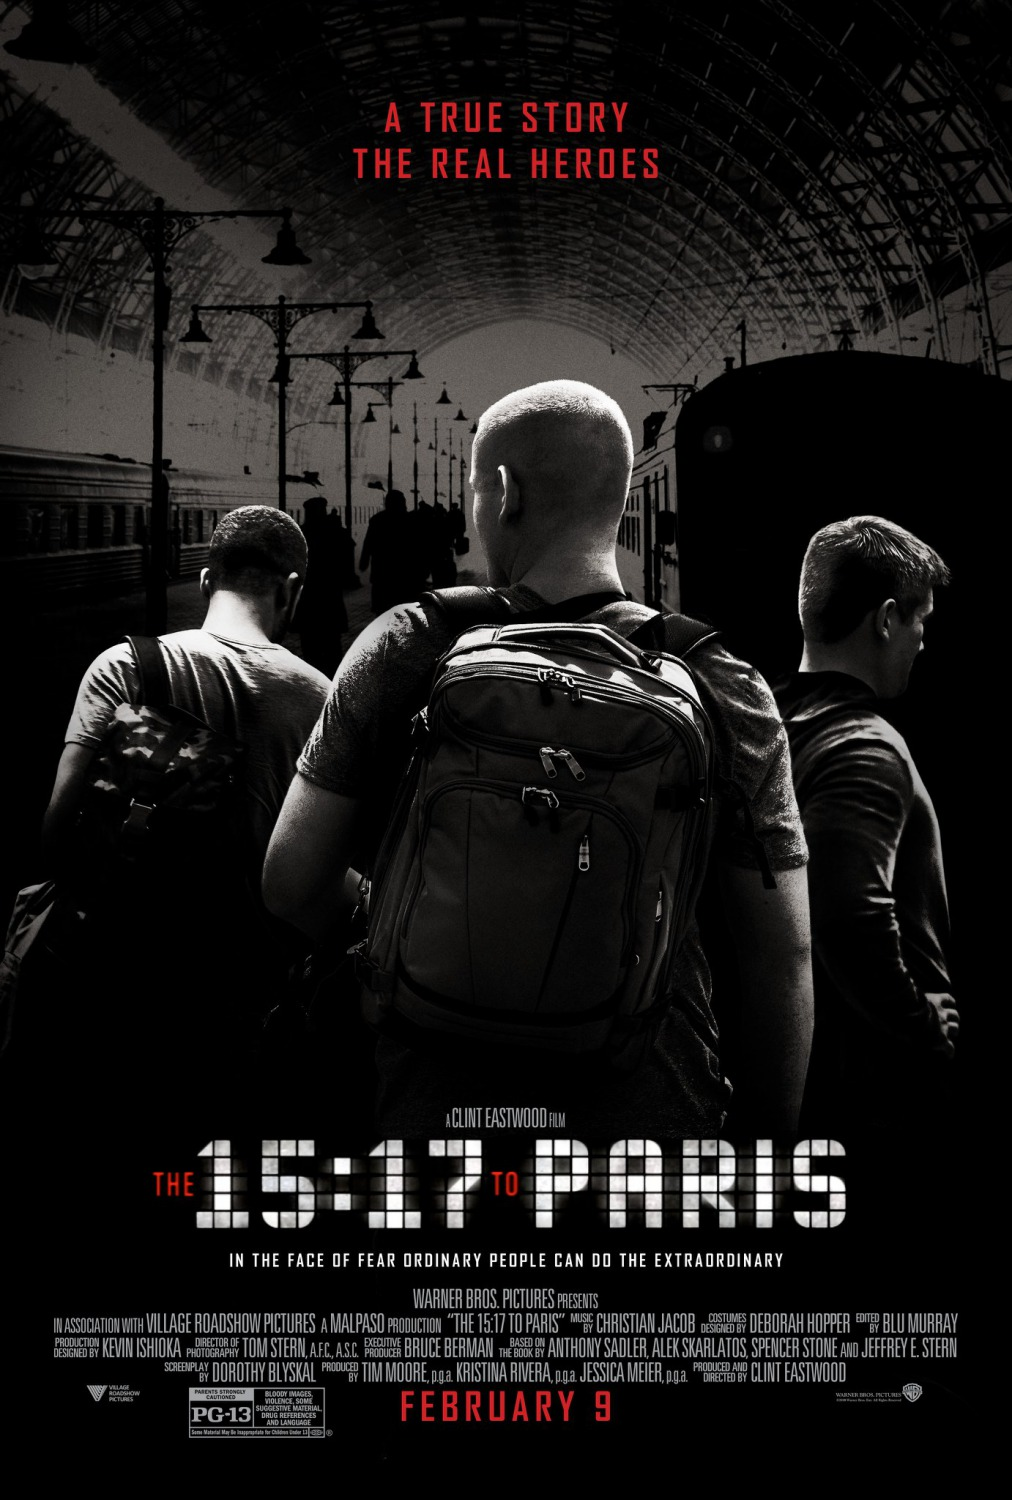 The 15 17 To Paris movie poster